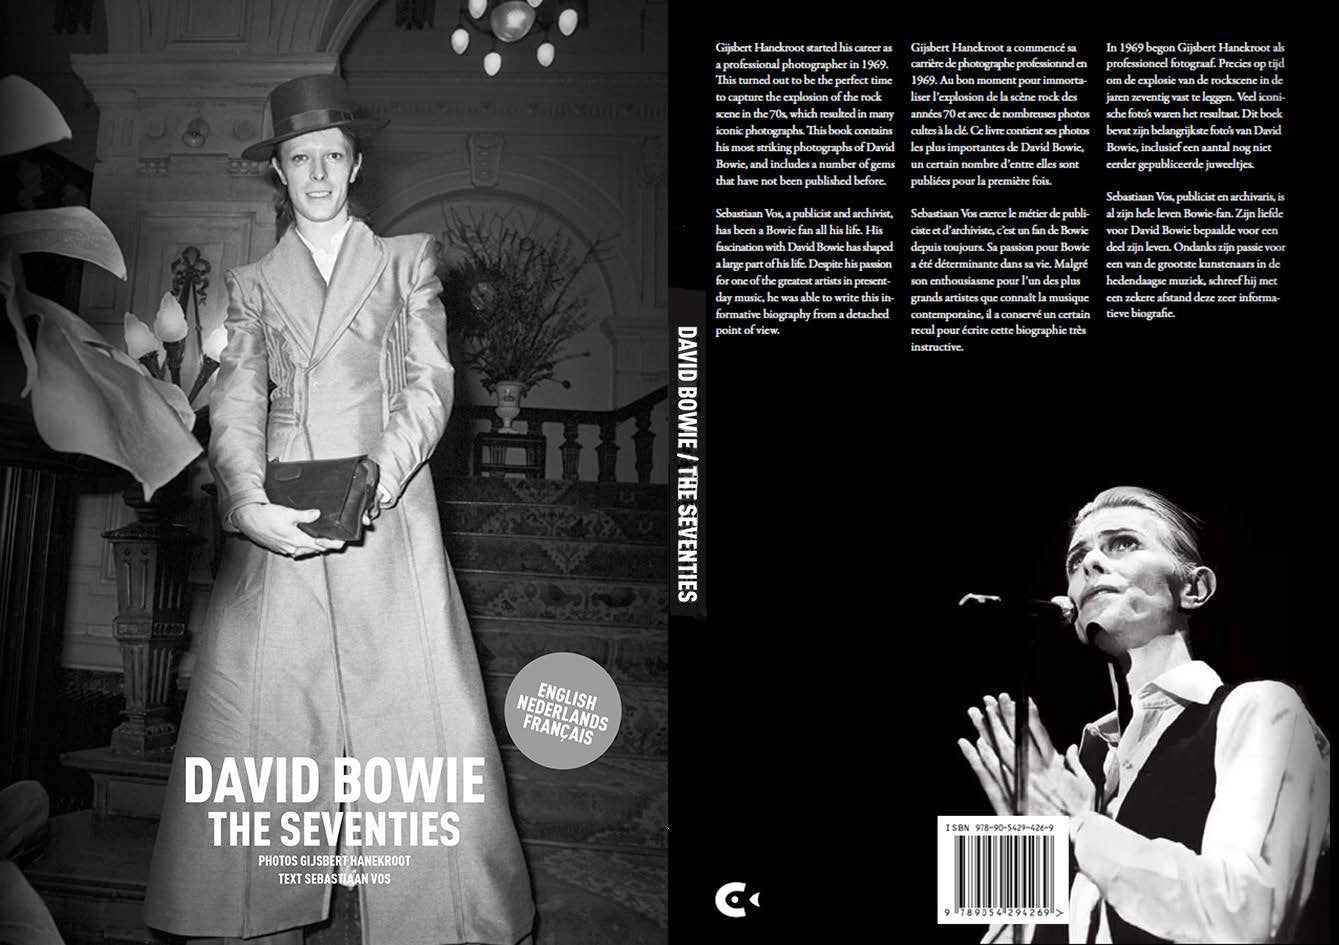 David Bowie Photo Book Bowie In The The Seventies Photo Book Signed Worn Free